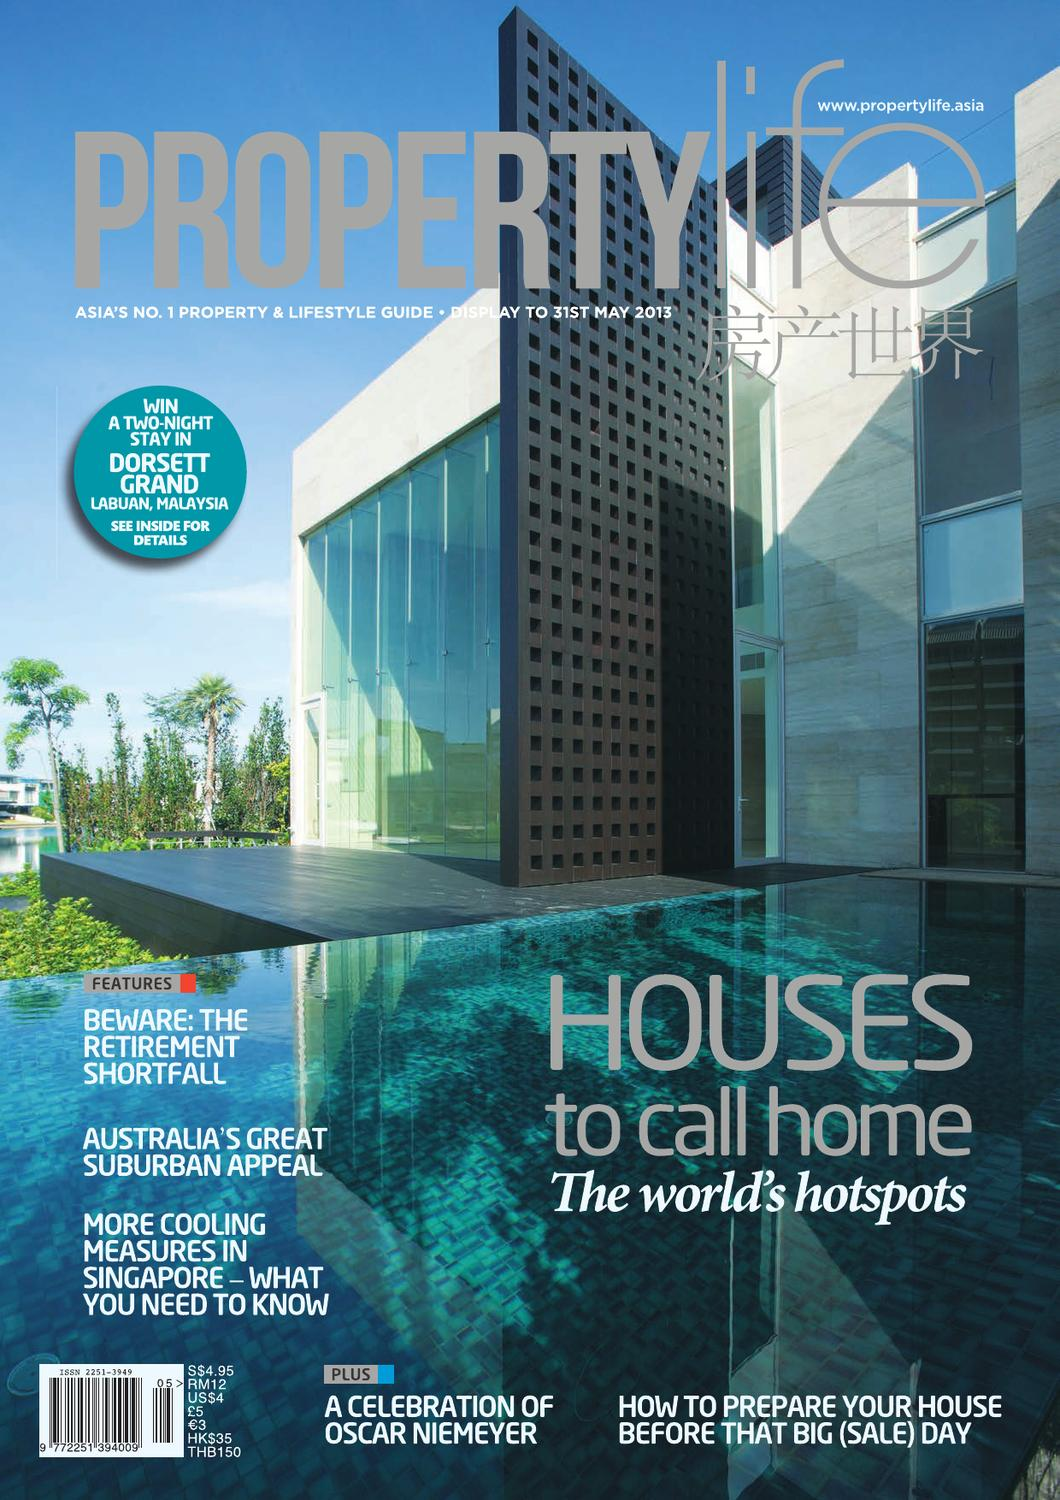 Property Life magazine - Issue 5 by Panashco Media Pte Ltd - issuu